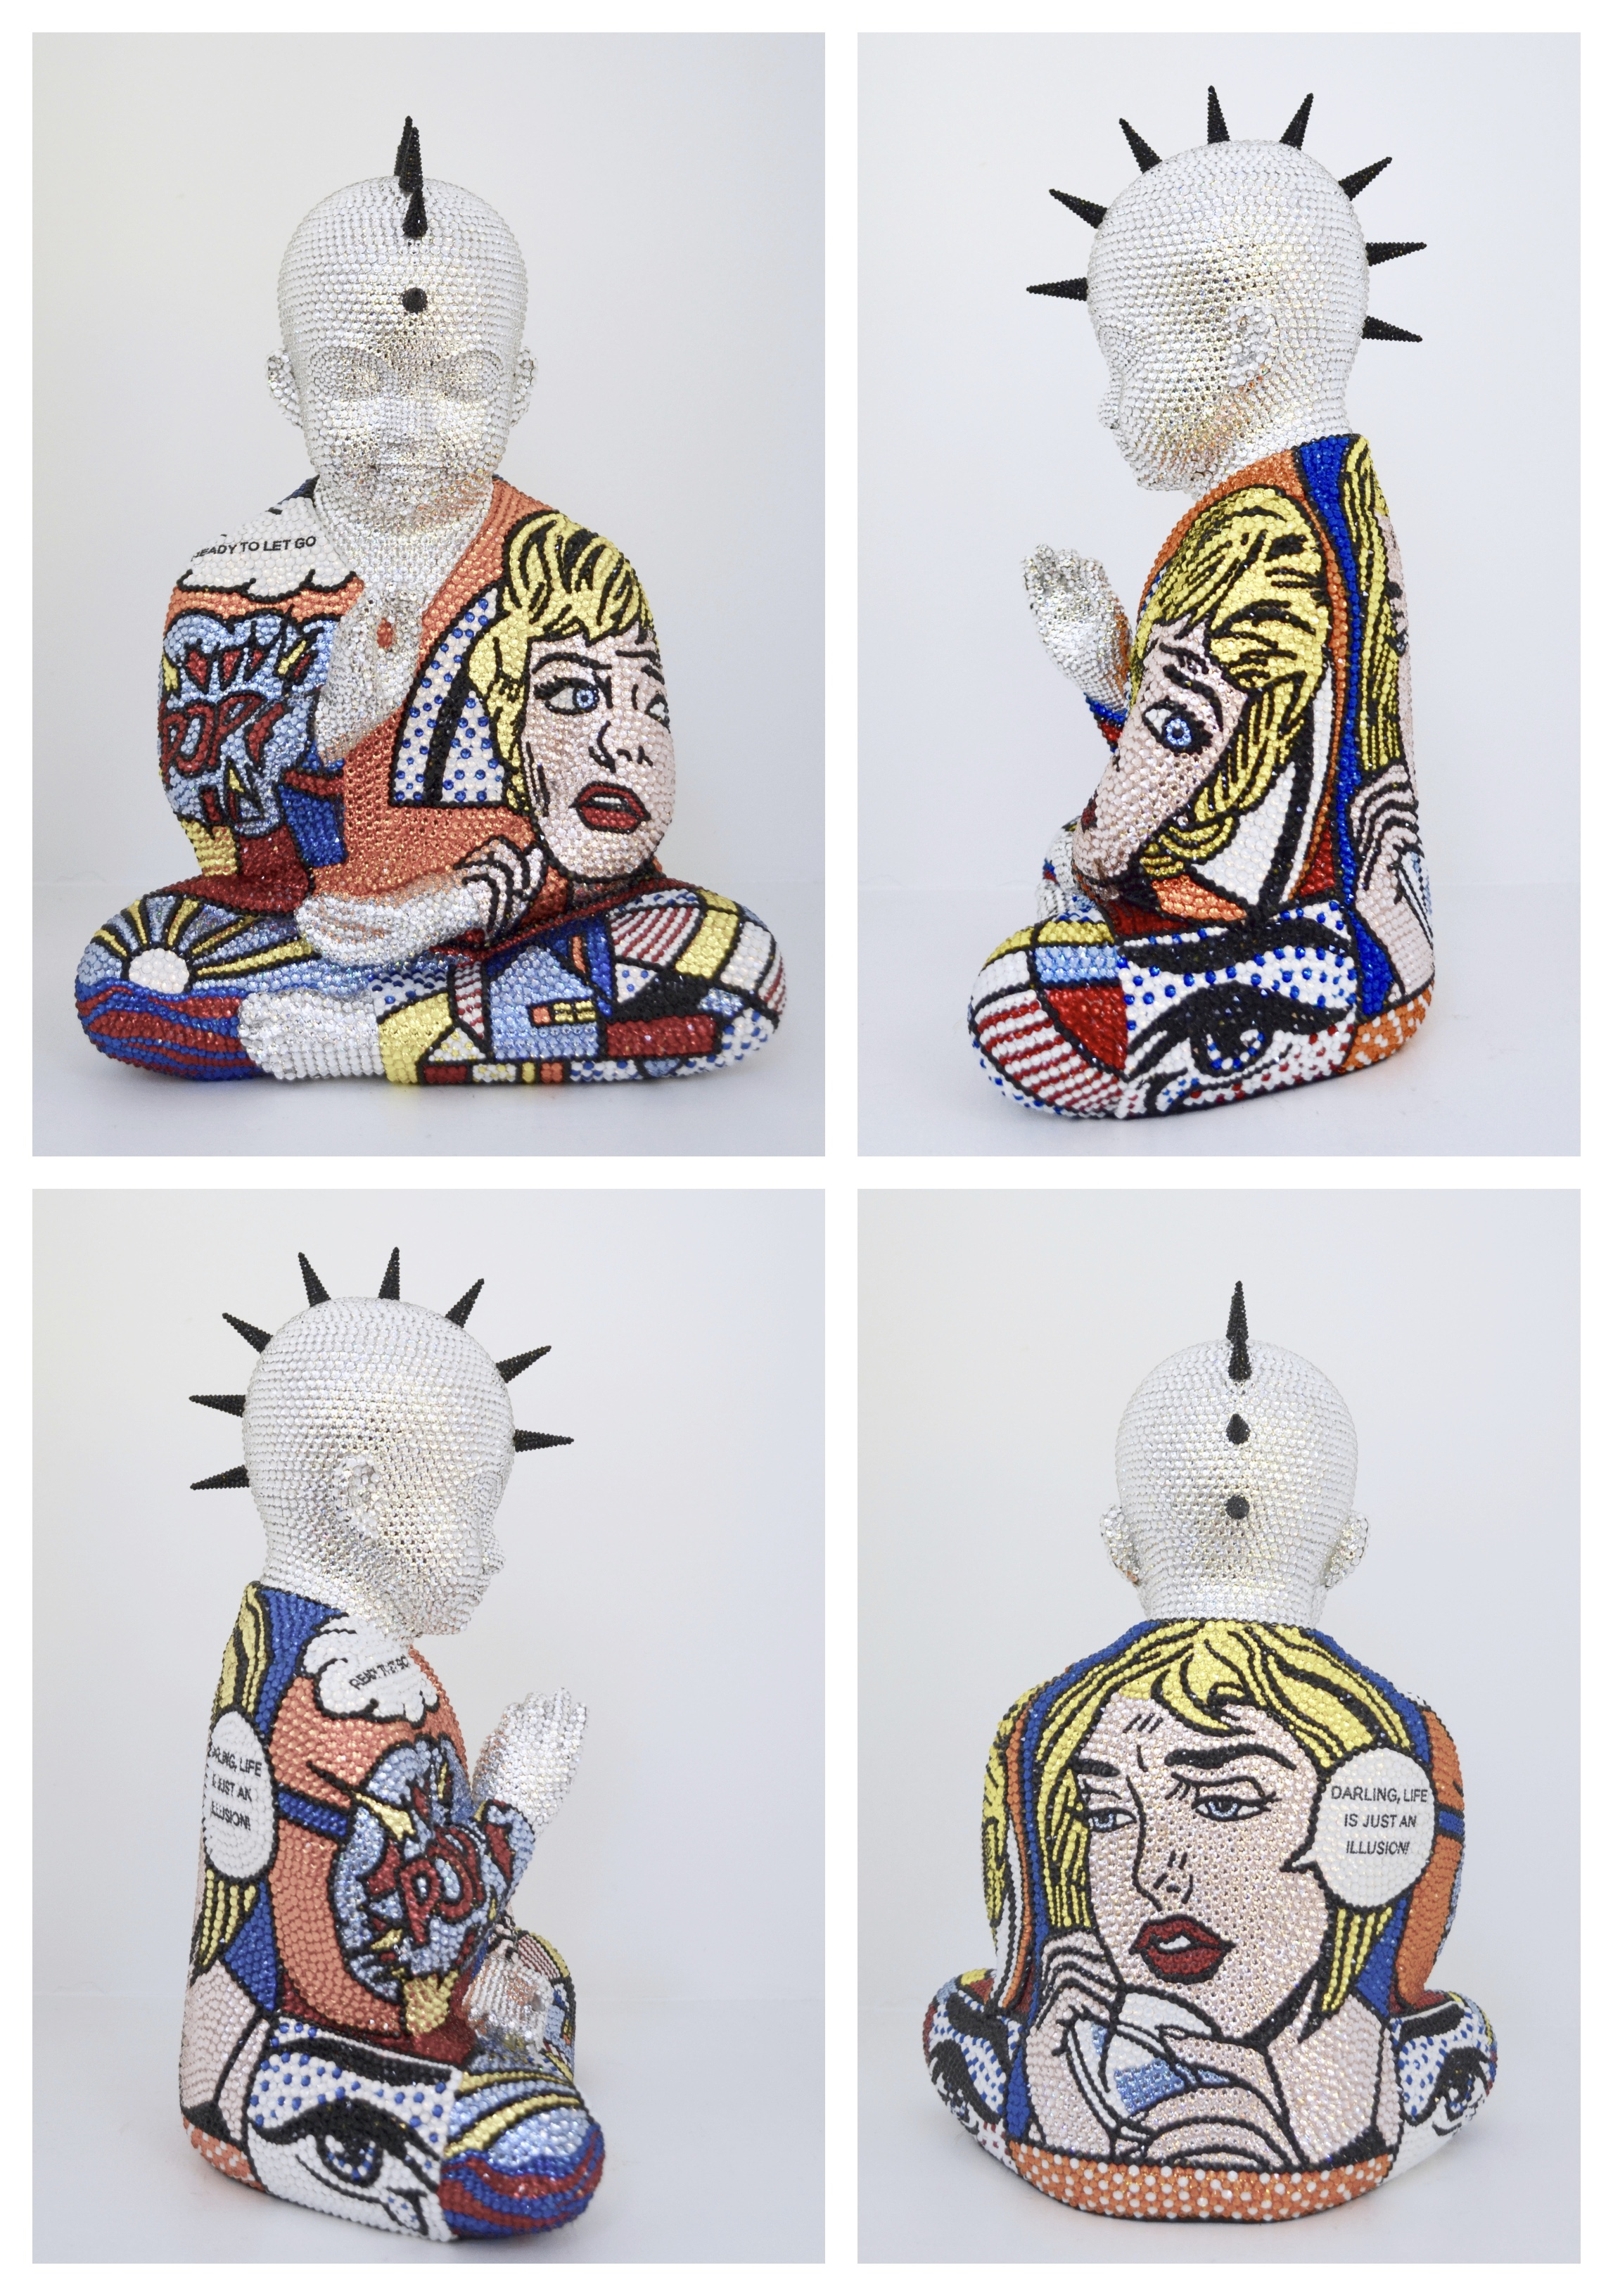 Roy Lichtenstein Sculpture Metis Atash